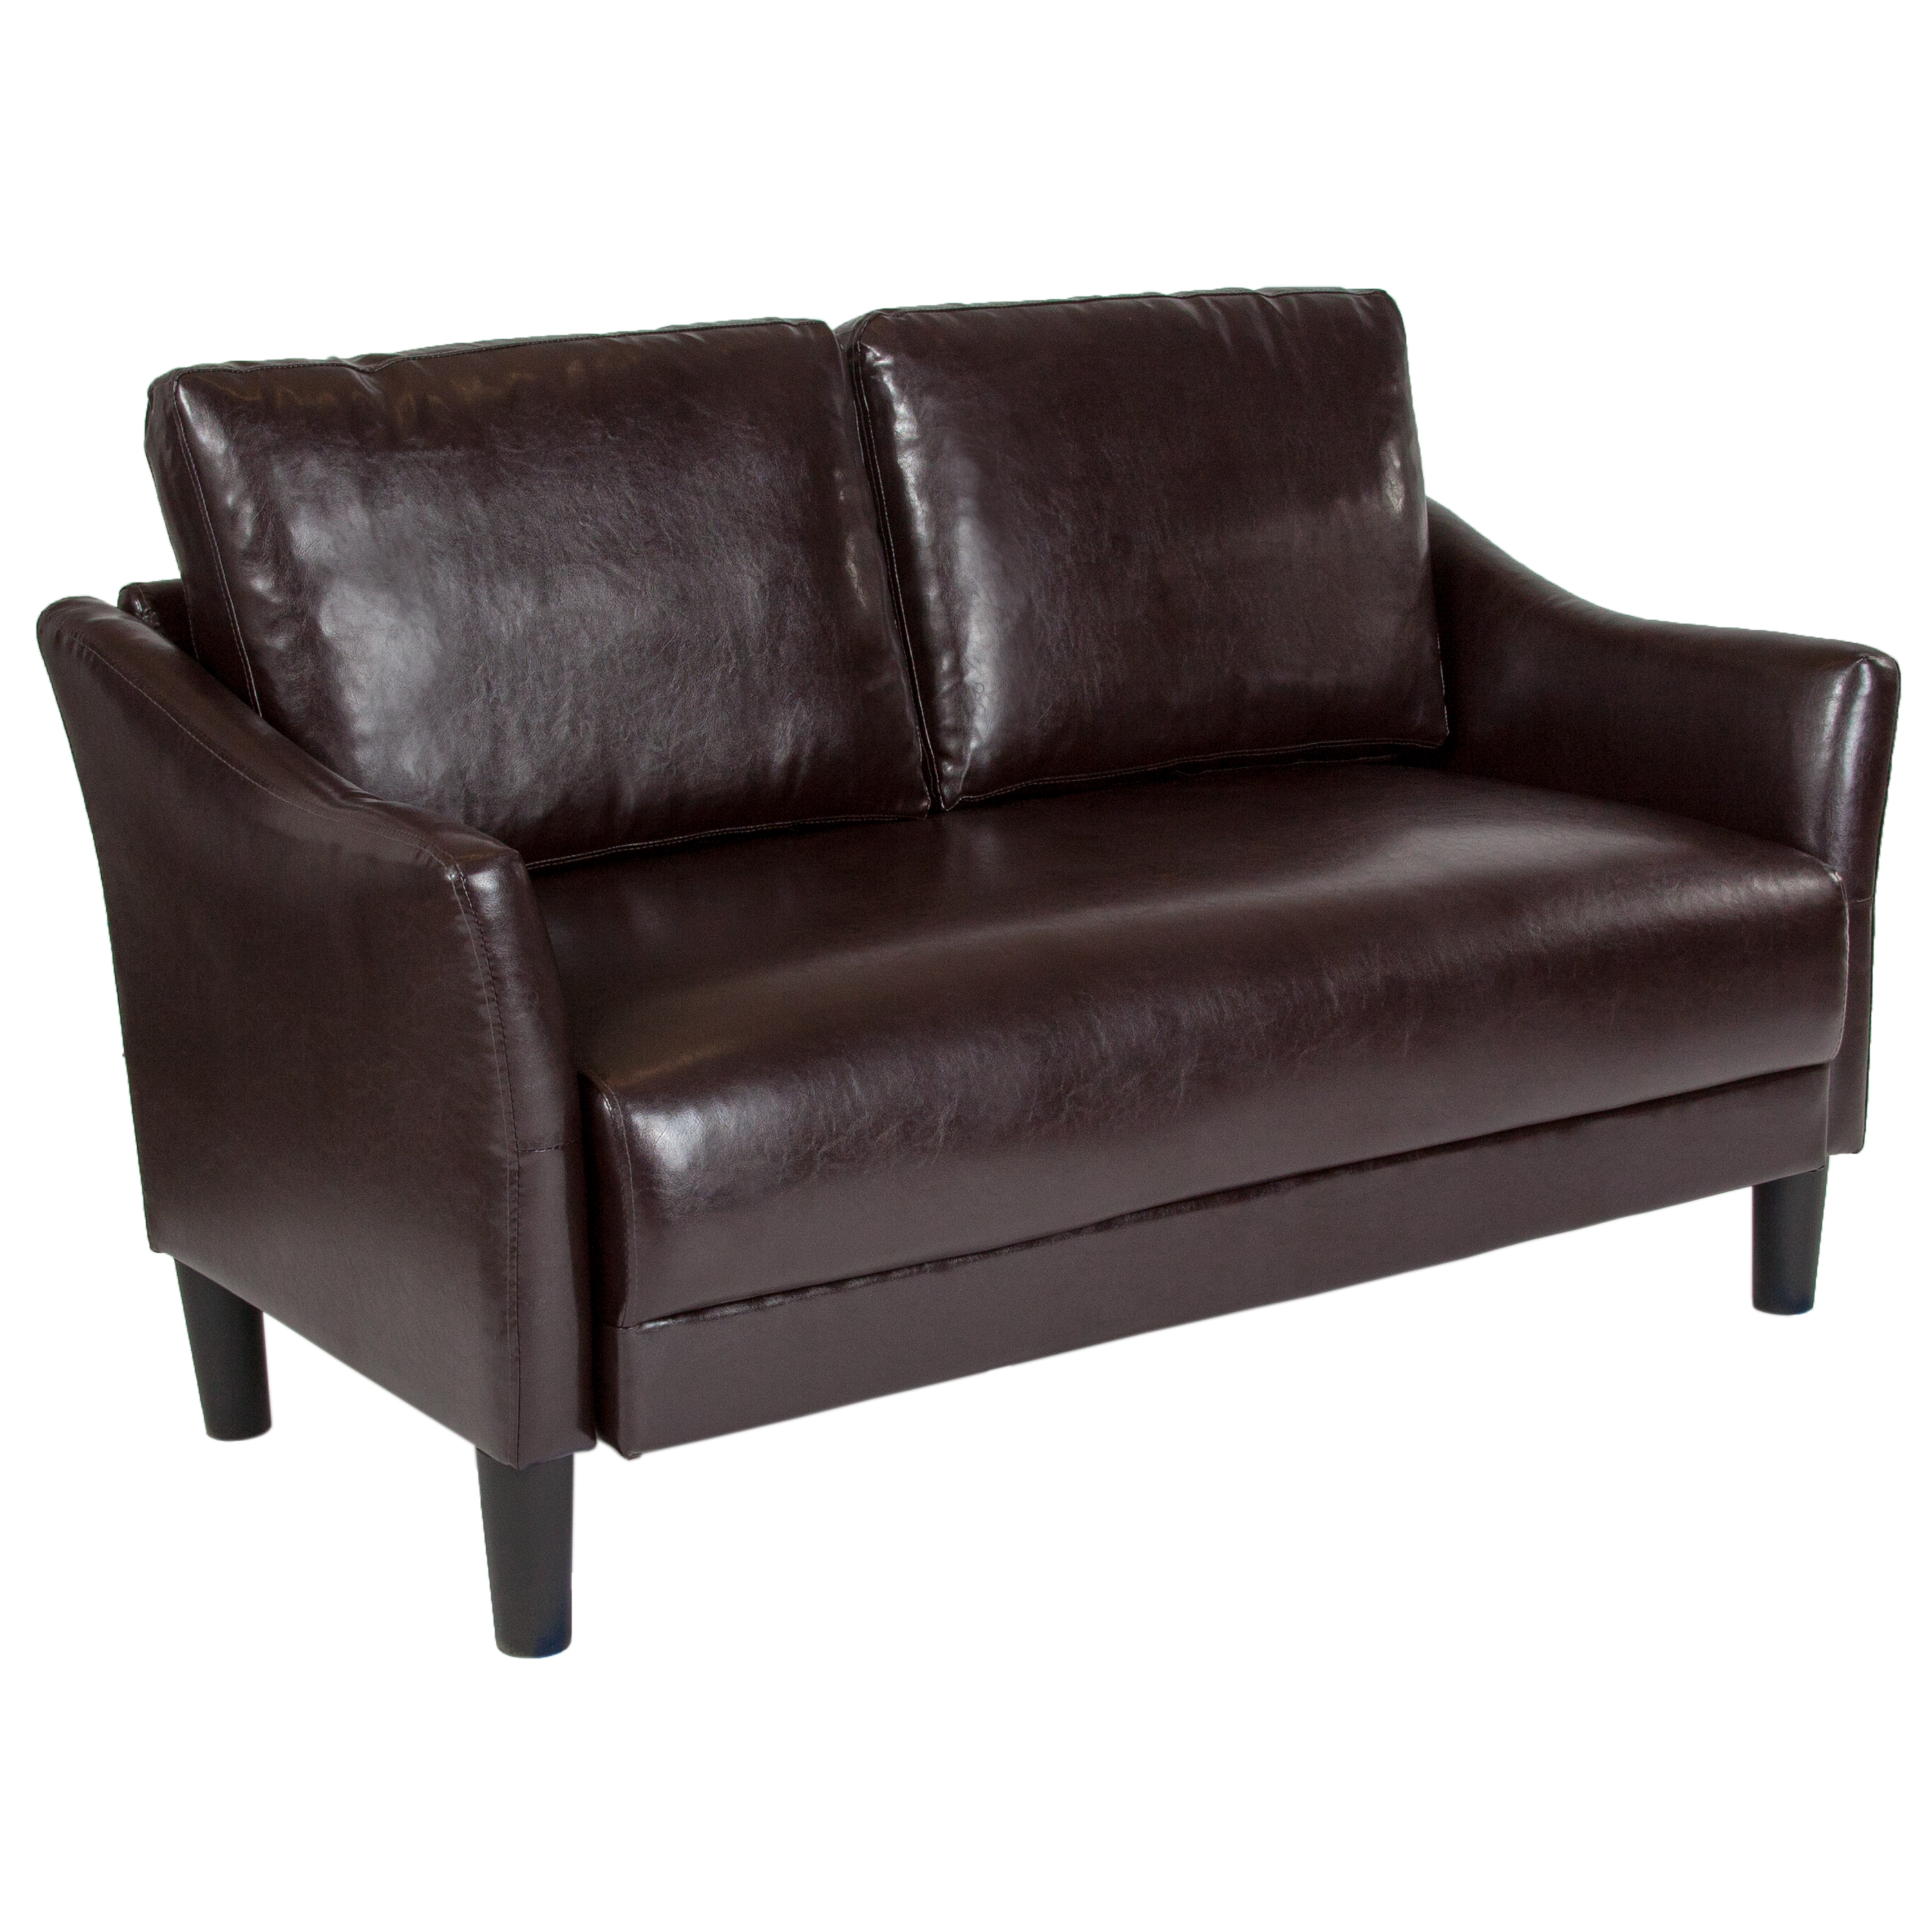 Asti Flash Furniture Upholstered Living Room Loveseat with Single Cushion Seat and Slanted Arms in Brown Leather